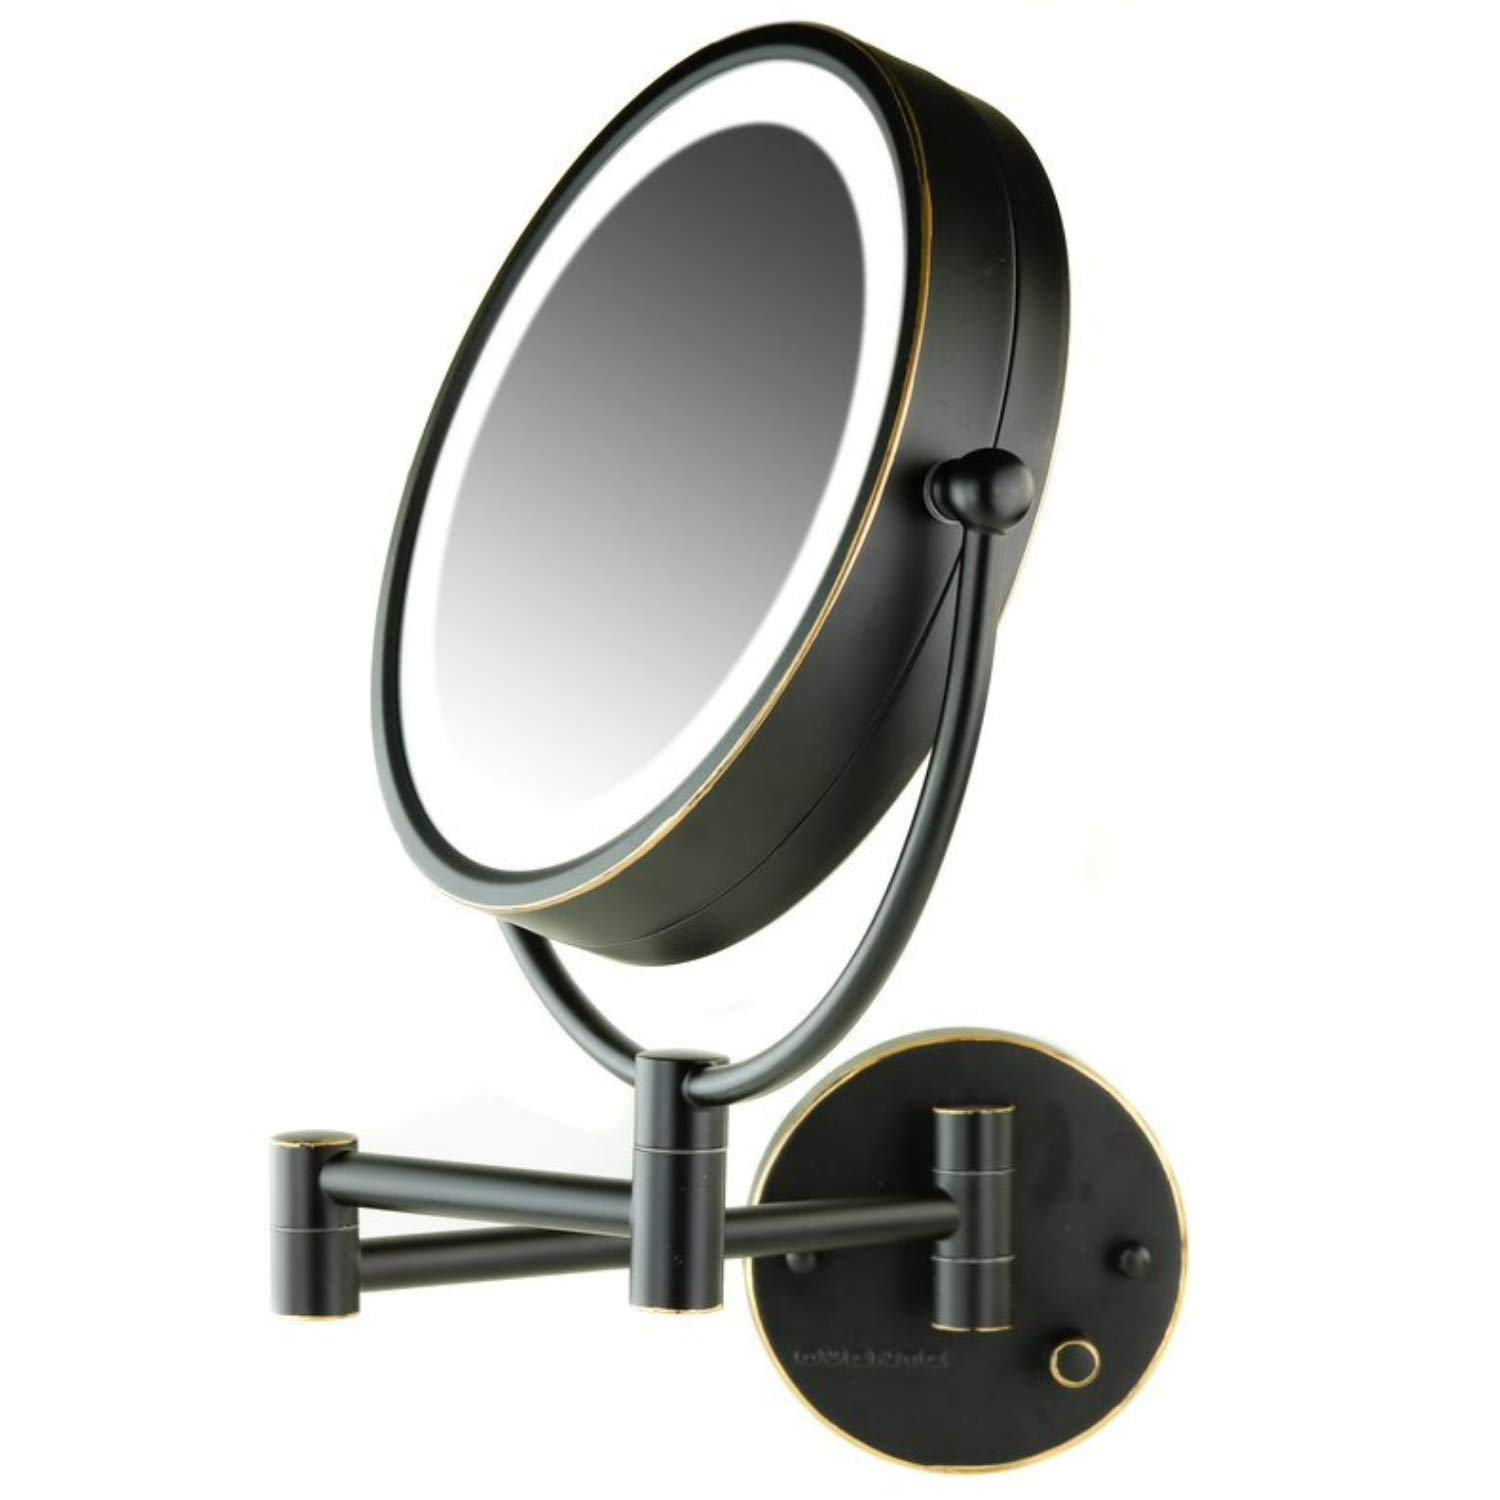 OVENTE Lighted Wall Mount Mirror, 8.5 Inch, Dual-Sided 1x/7x Magnification, Hardwired Electrical Connection, Natural White LED Lights, 9-Watts, Bronze (MPWD3185BZ1X7X)